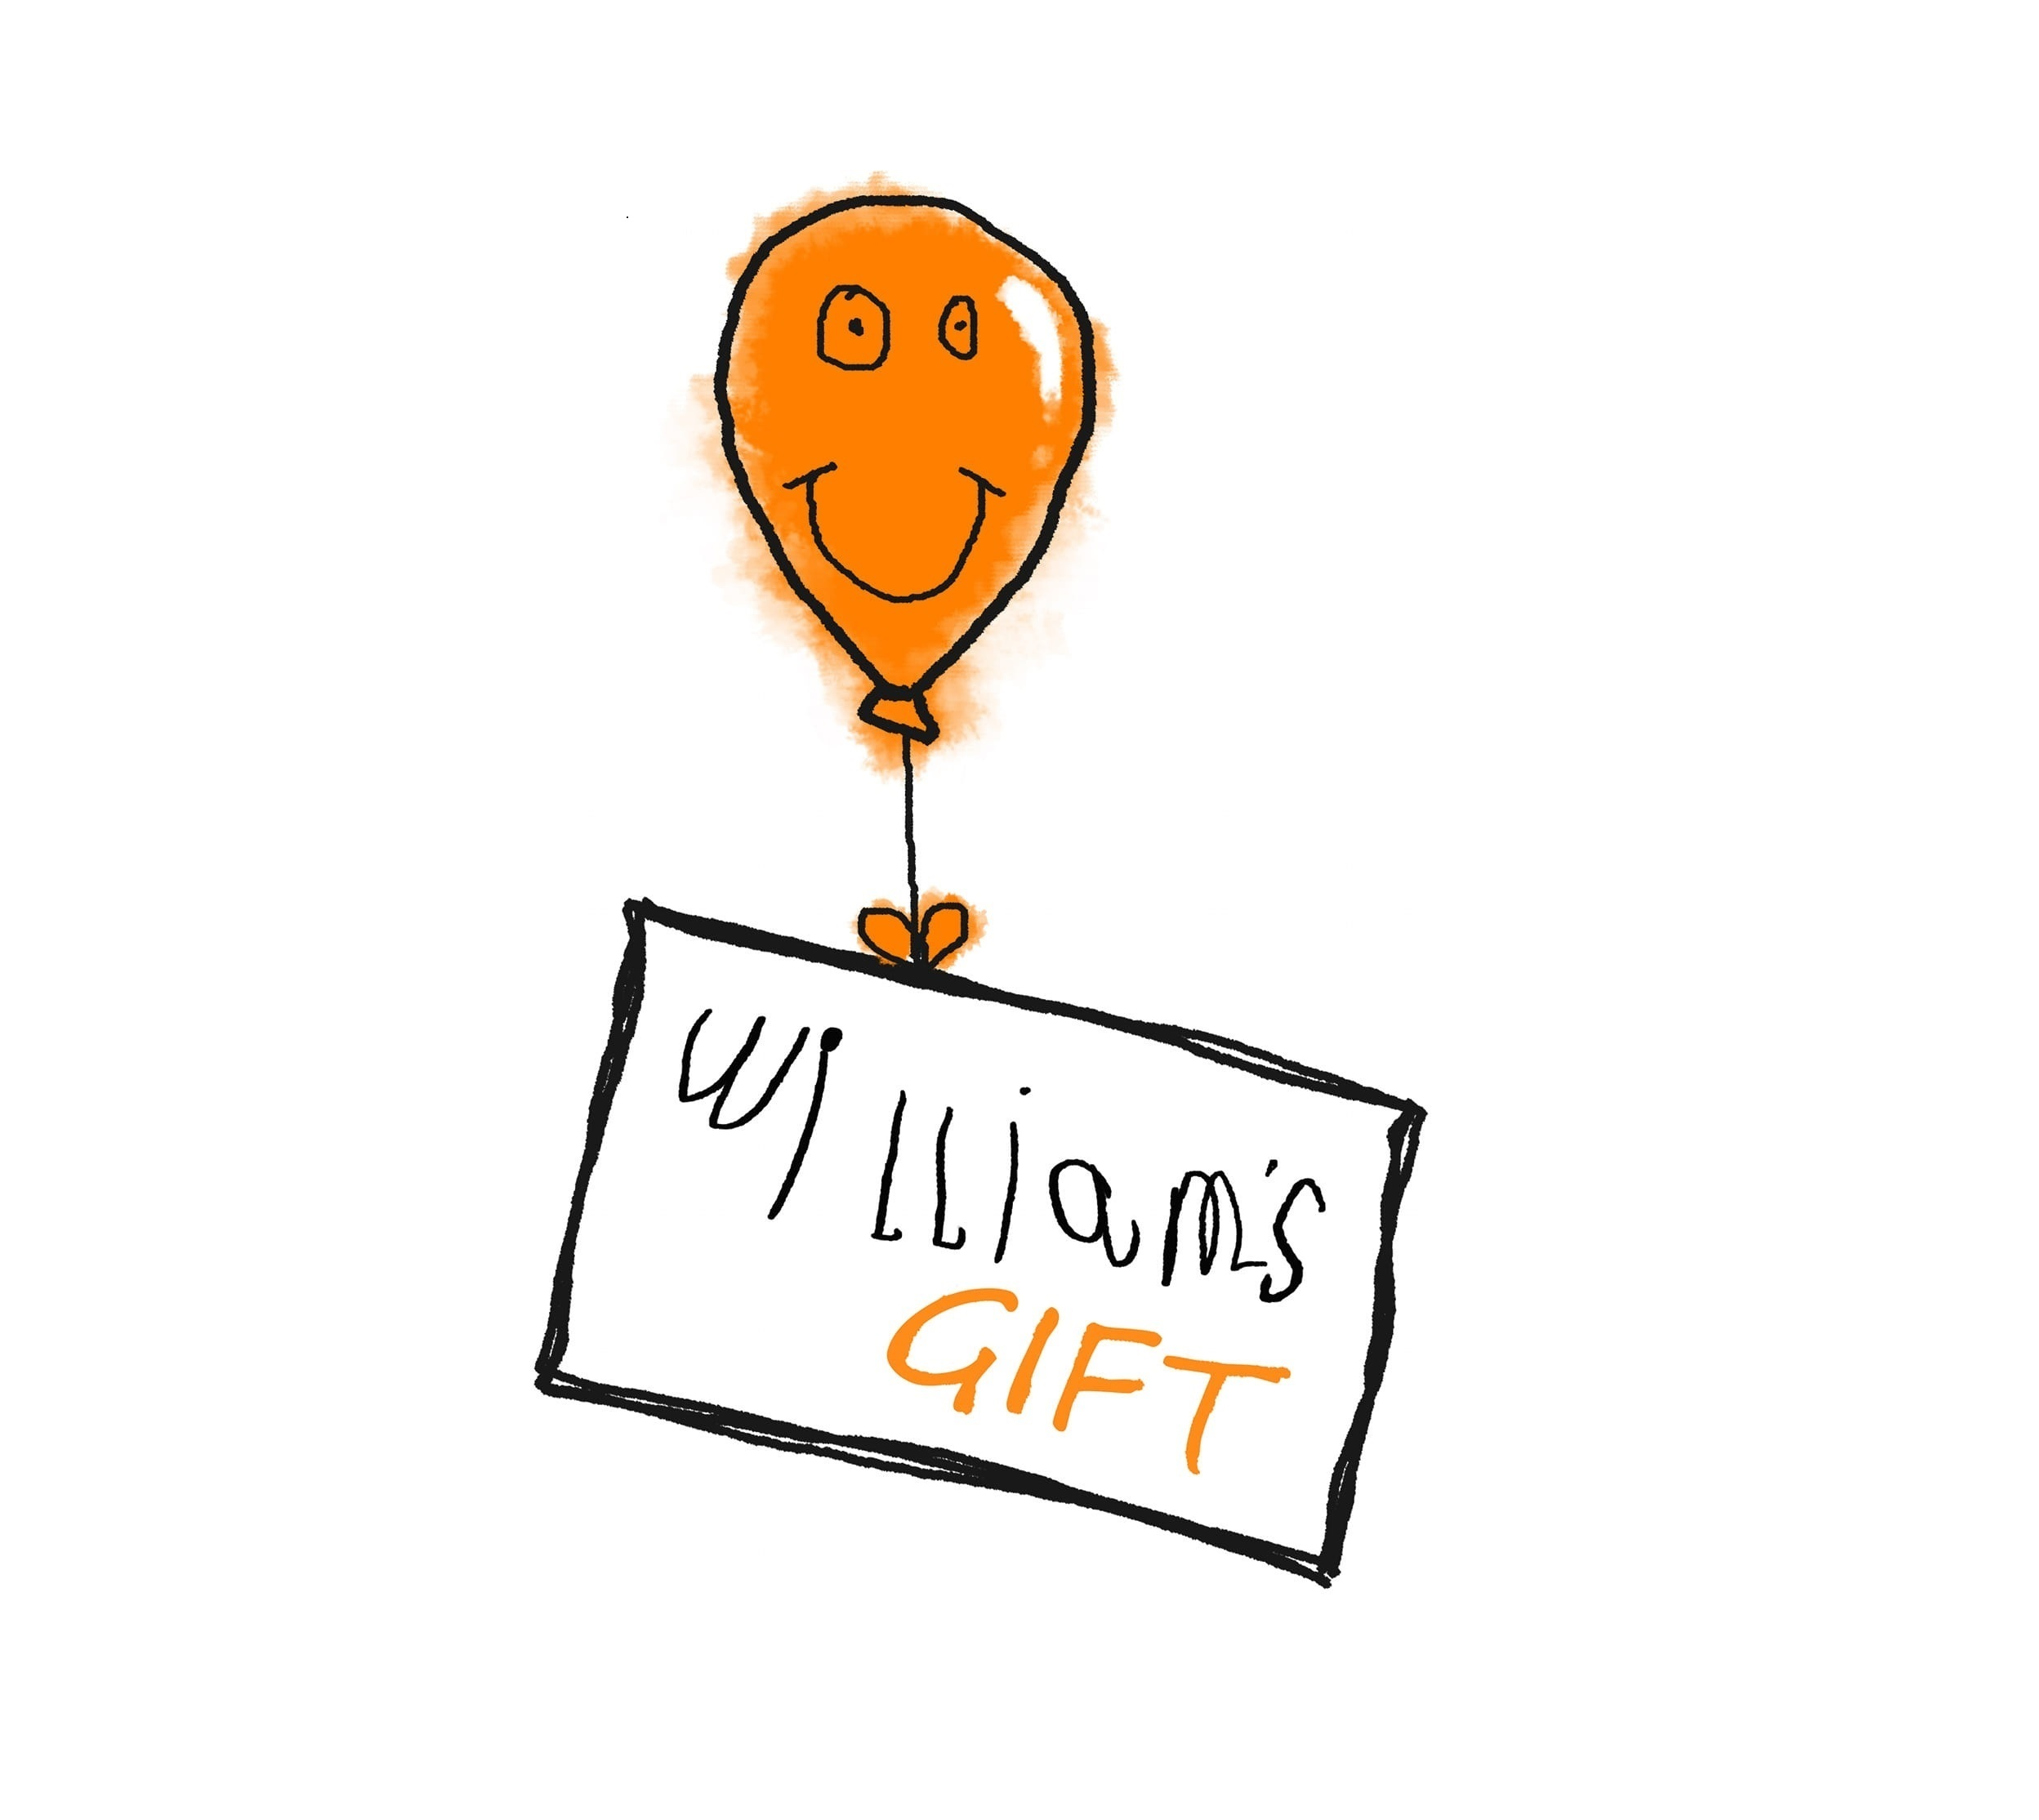 Williams Gift Charity Lymm Osteopathic Practice